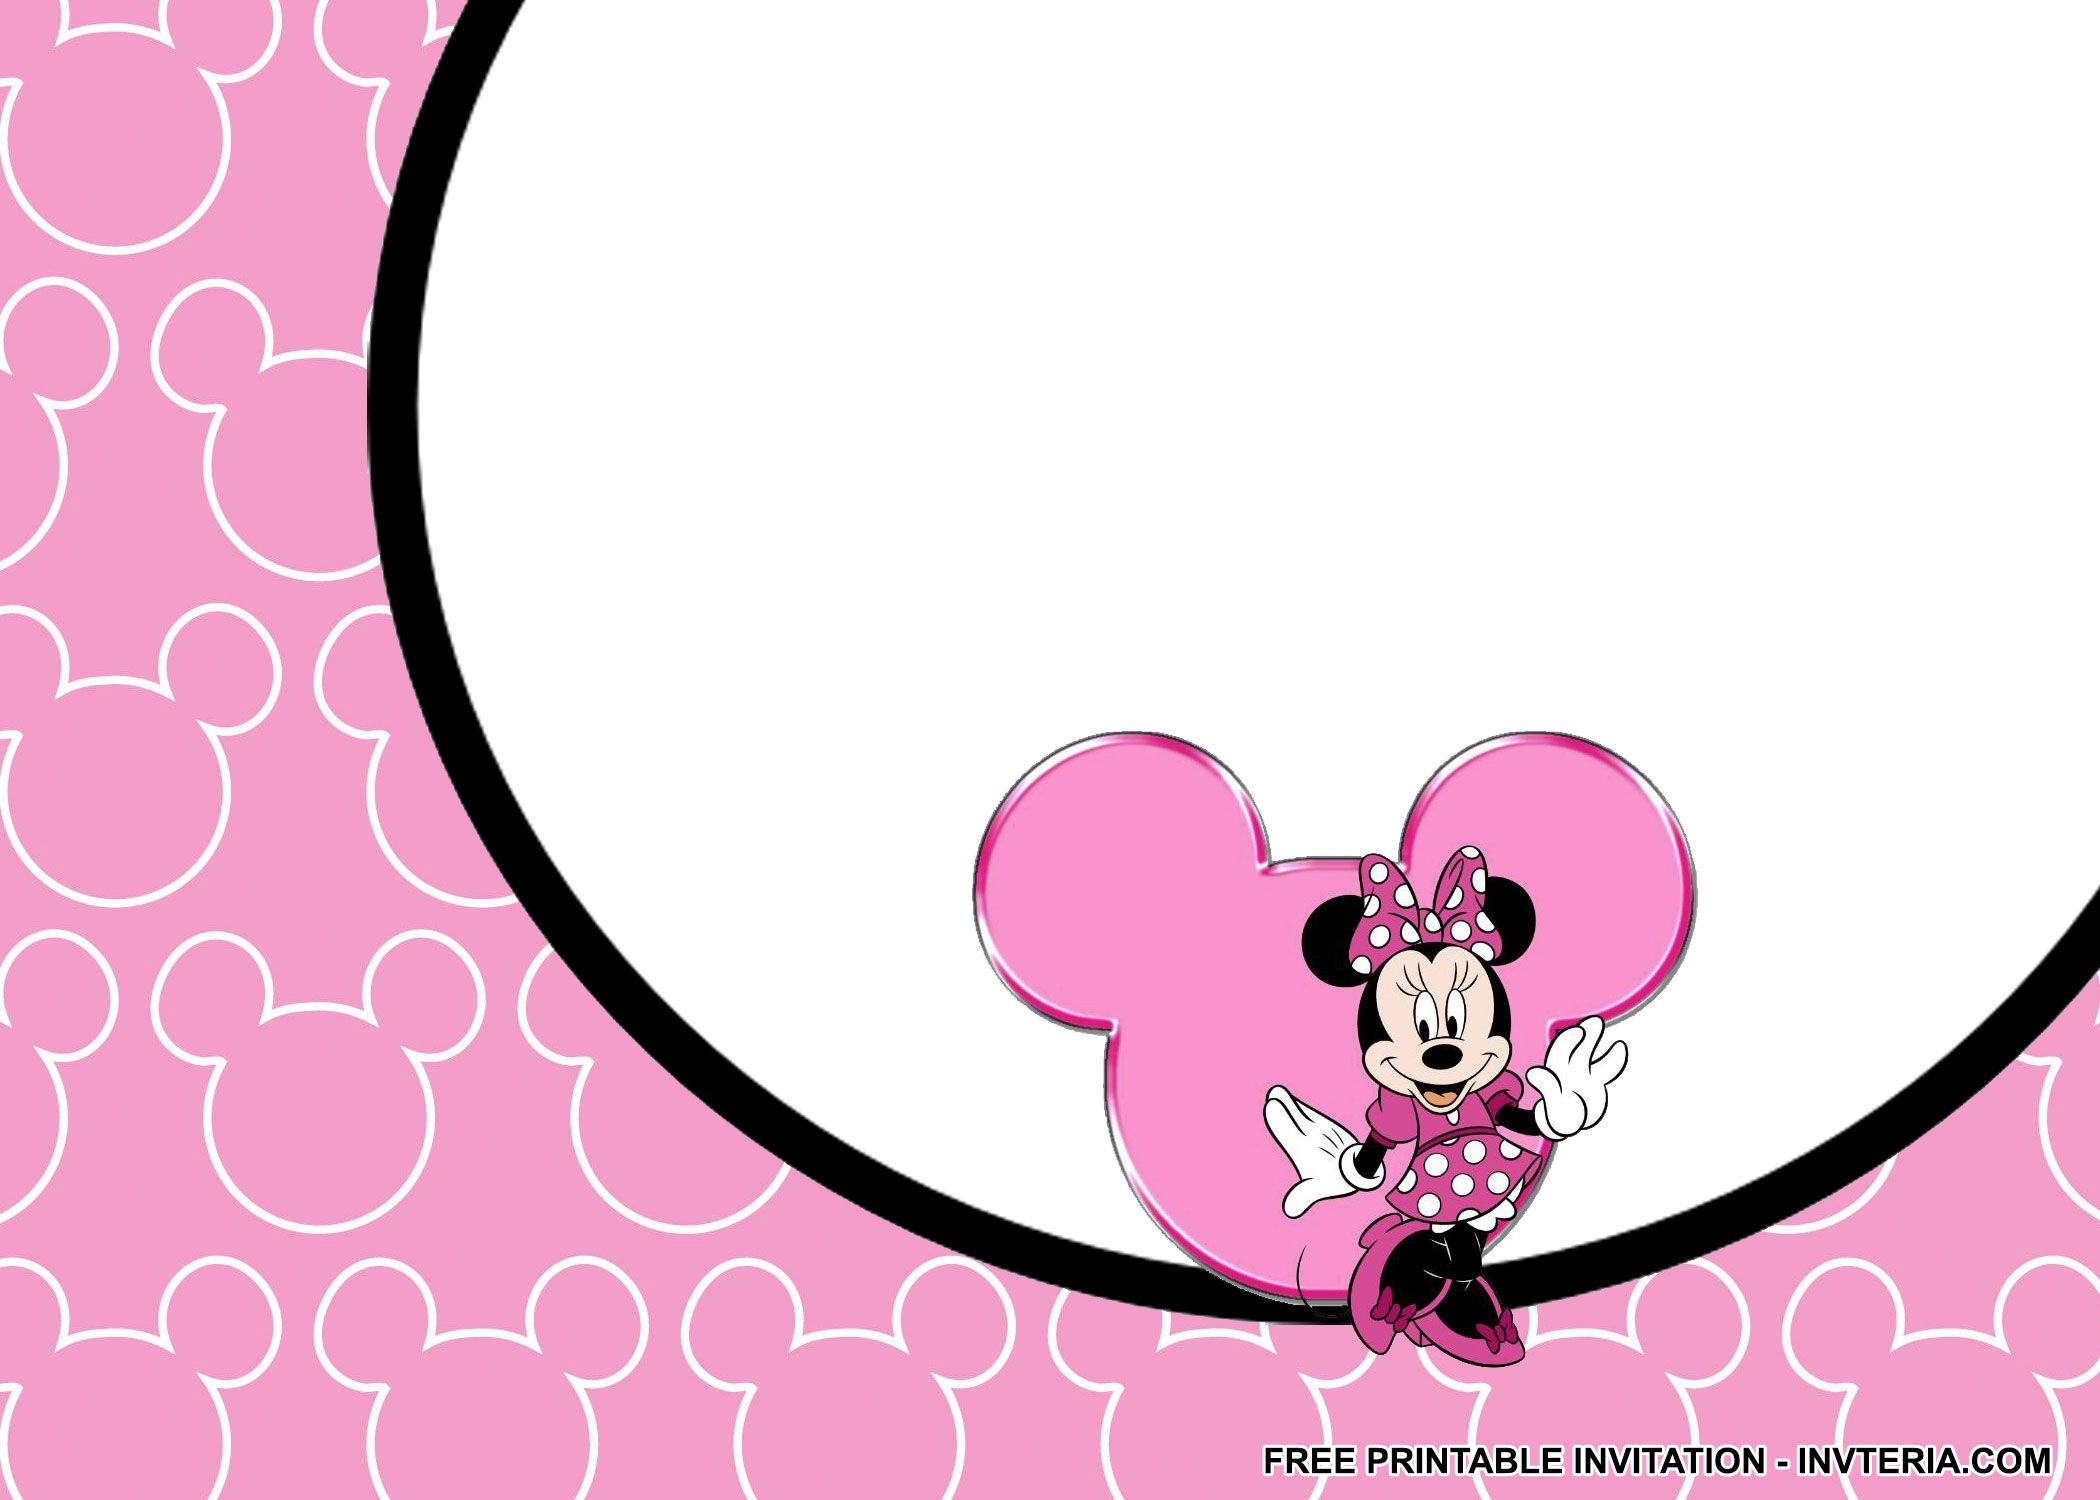 AWESOME FREE MINNIE MOUSE BIRTHDAY INVITATIONS IDEA | Invitation ...